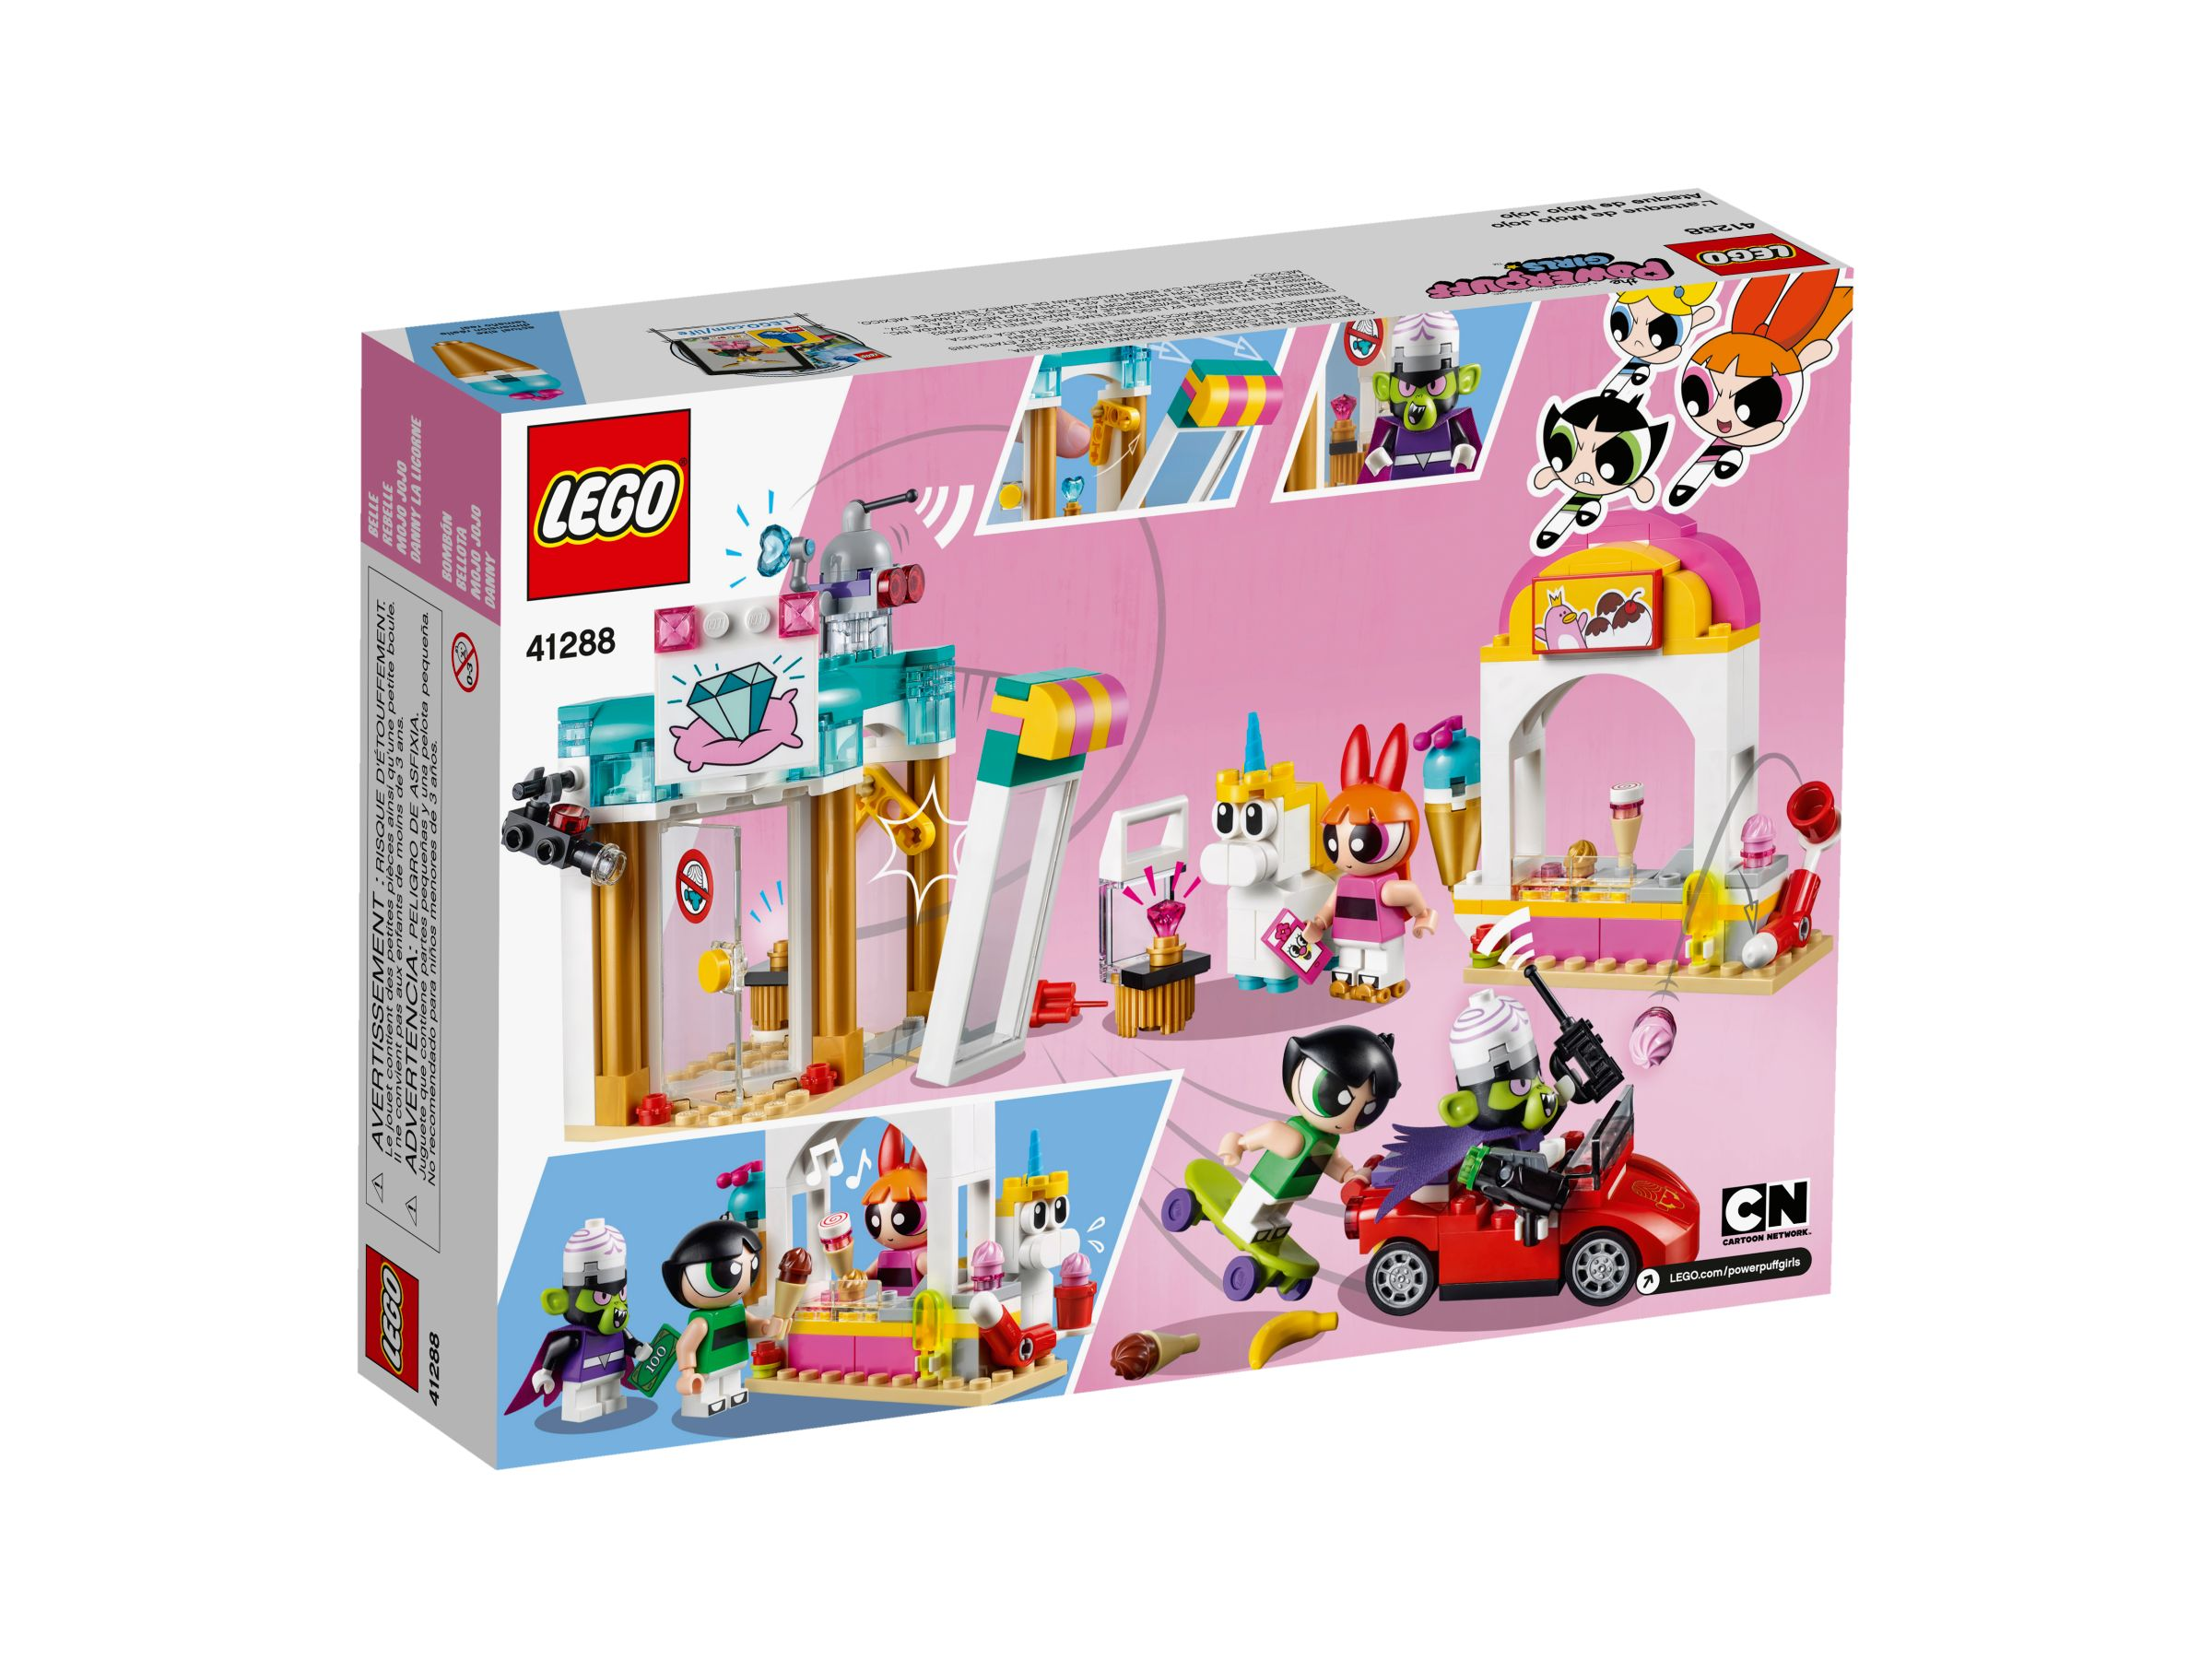 LEGO The Powerpuff Girls 41288 Angriff von Mojo Jojo LEGO_41288_alt6.jpg